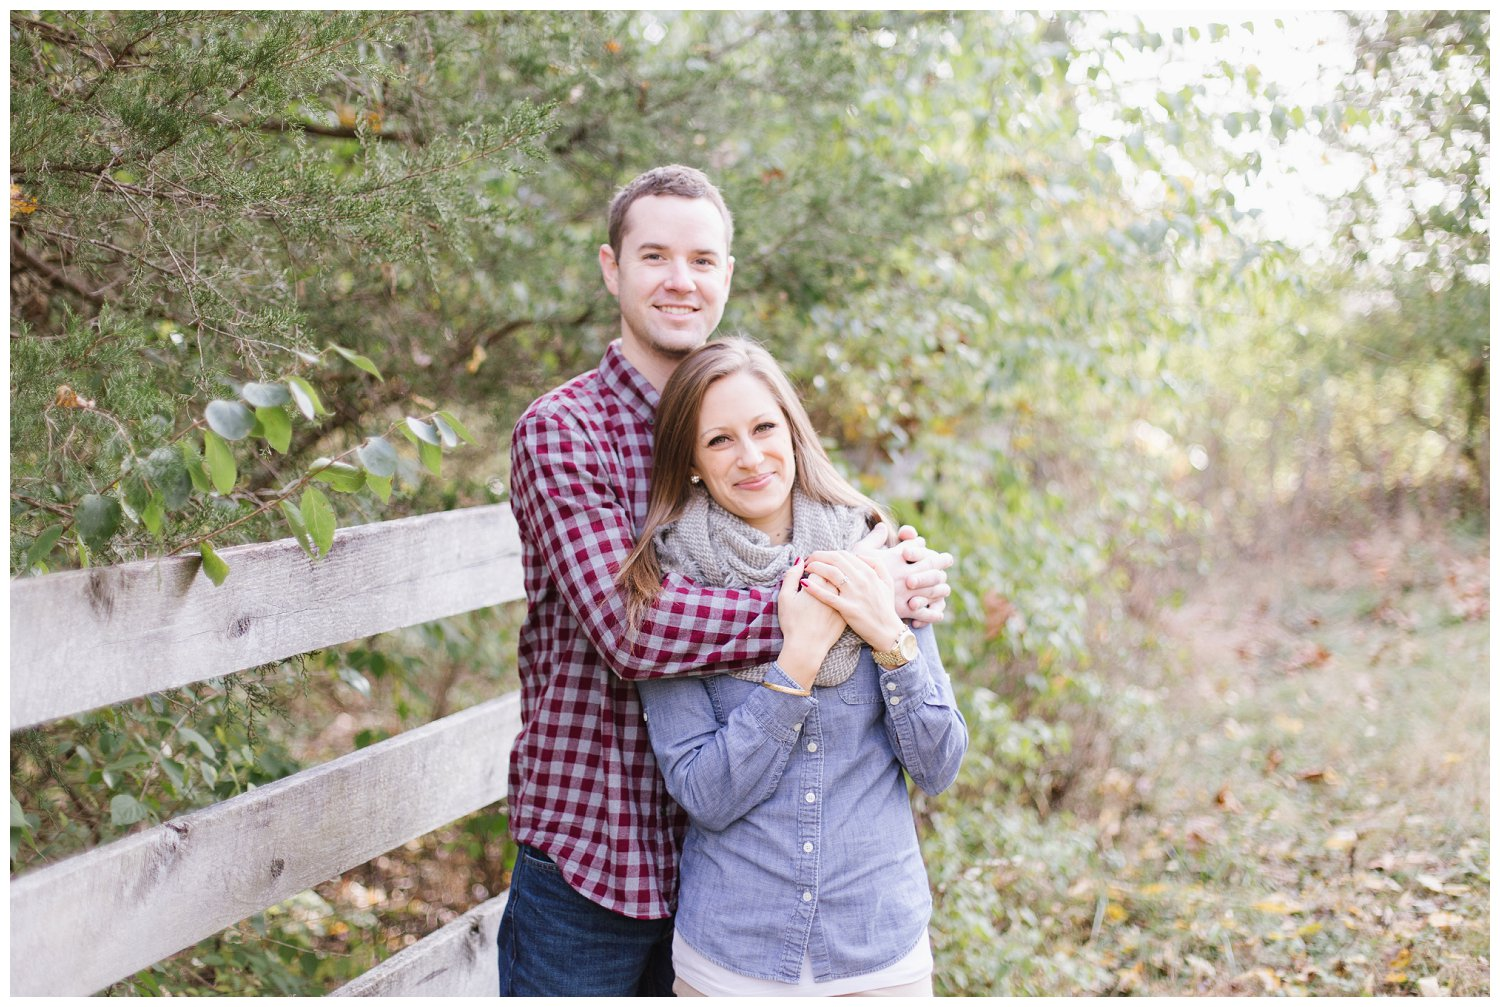 laina-matt-prospect-kentucky-engagement-session_0004.jpg